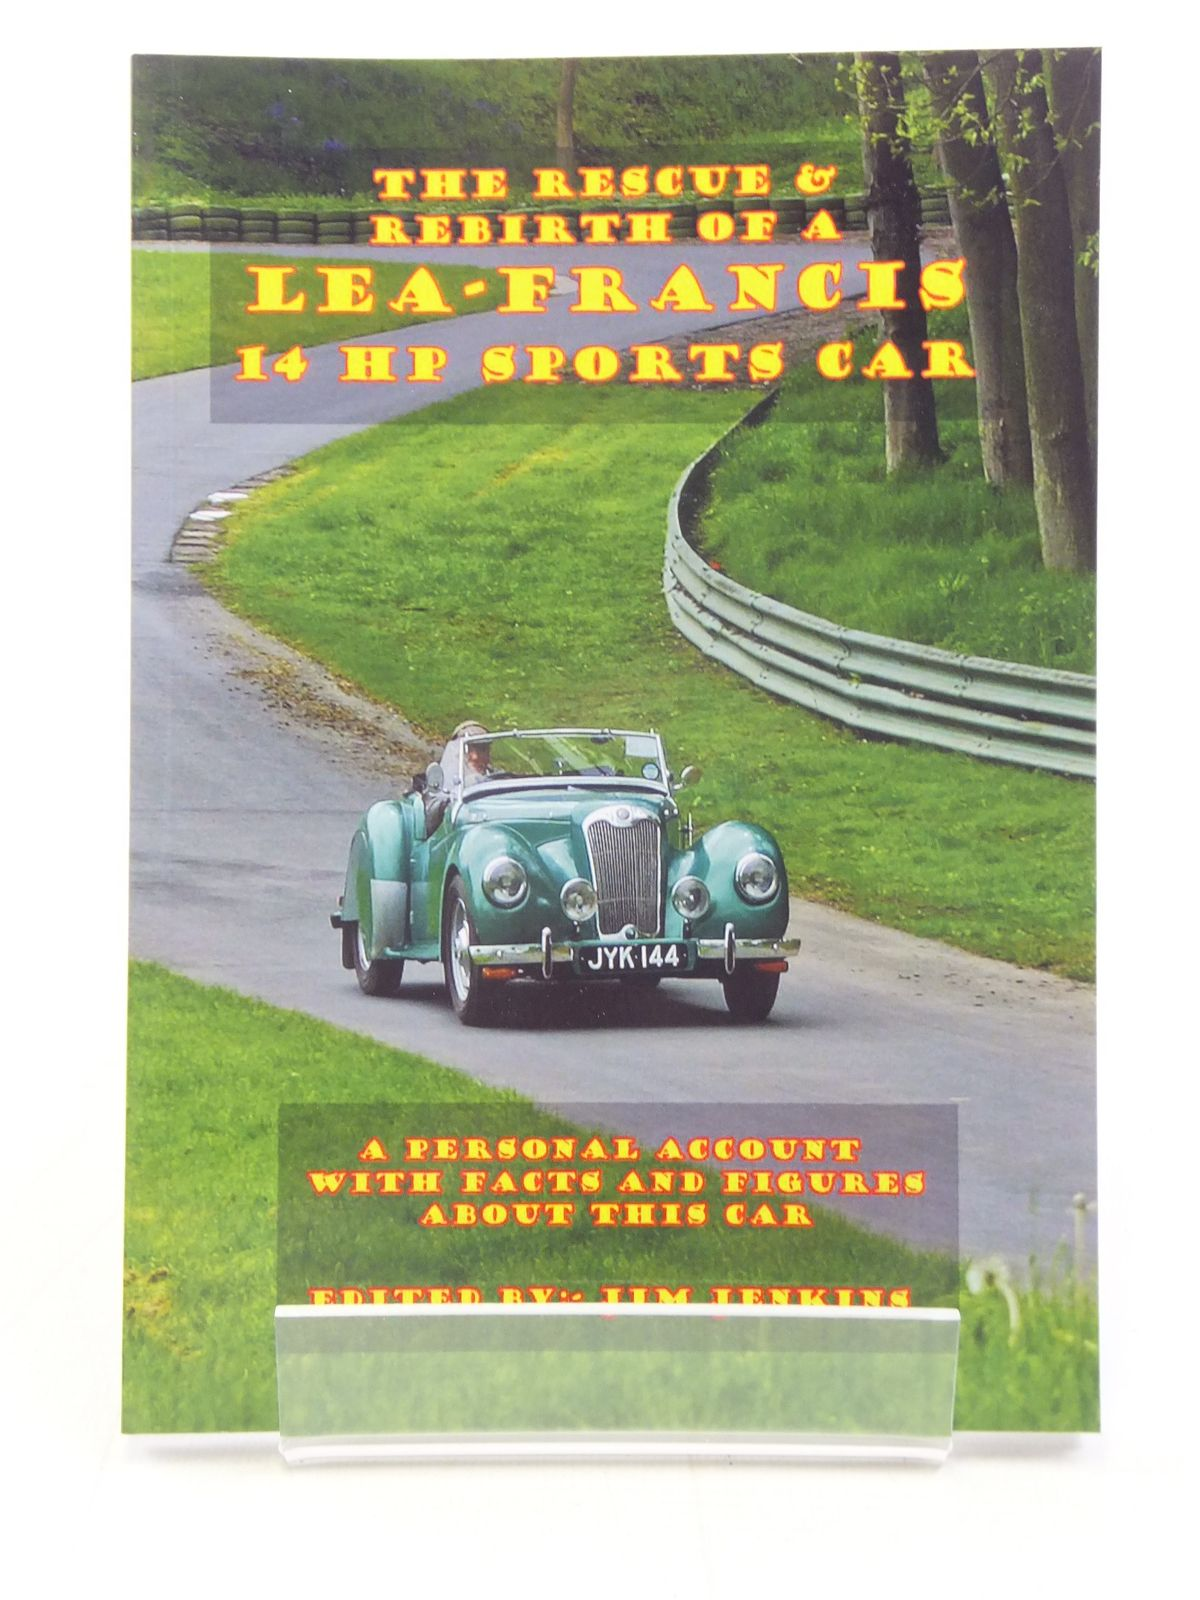 Photo of THE RESCUE & REBIRTH OF A LEA-FRANCIS 14 HP SPORTS CAR written by Jenkins, Jim published by Jim Jenkins (STOCK CODE: 1606387)  for sale by Stella & Rose's Books